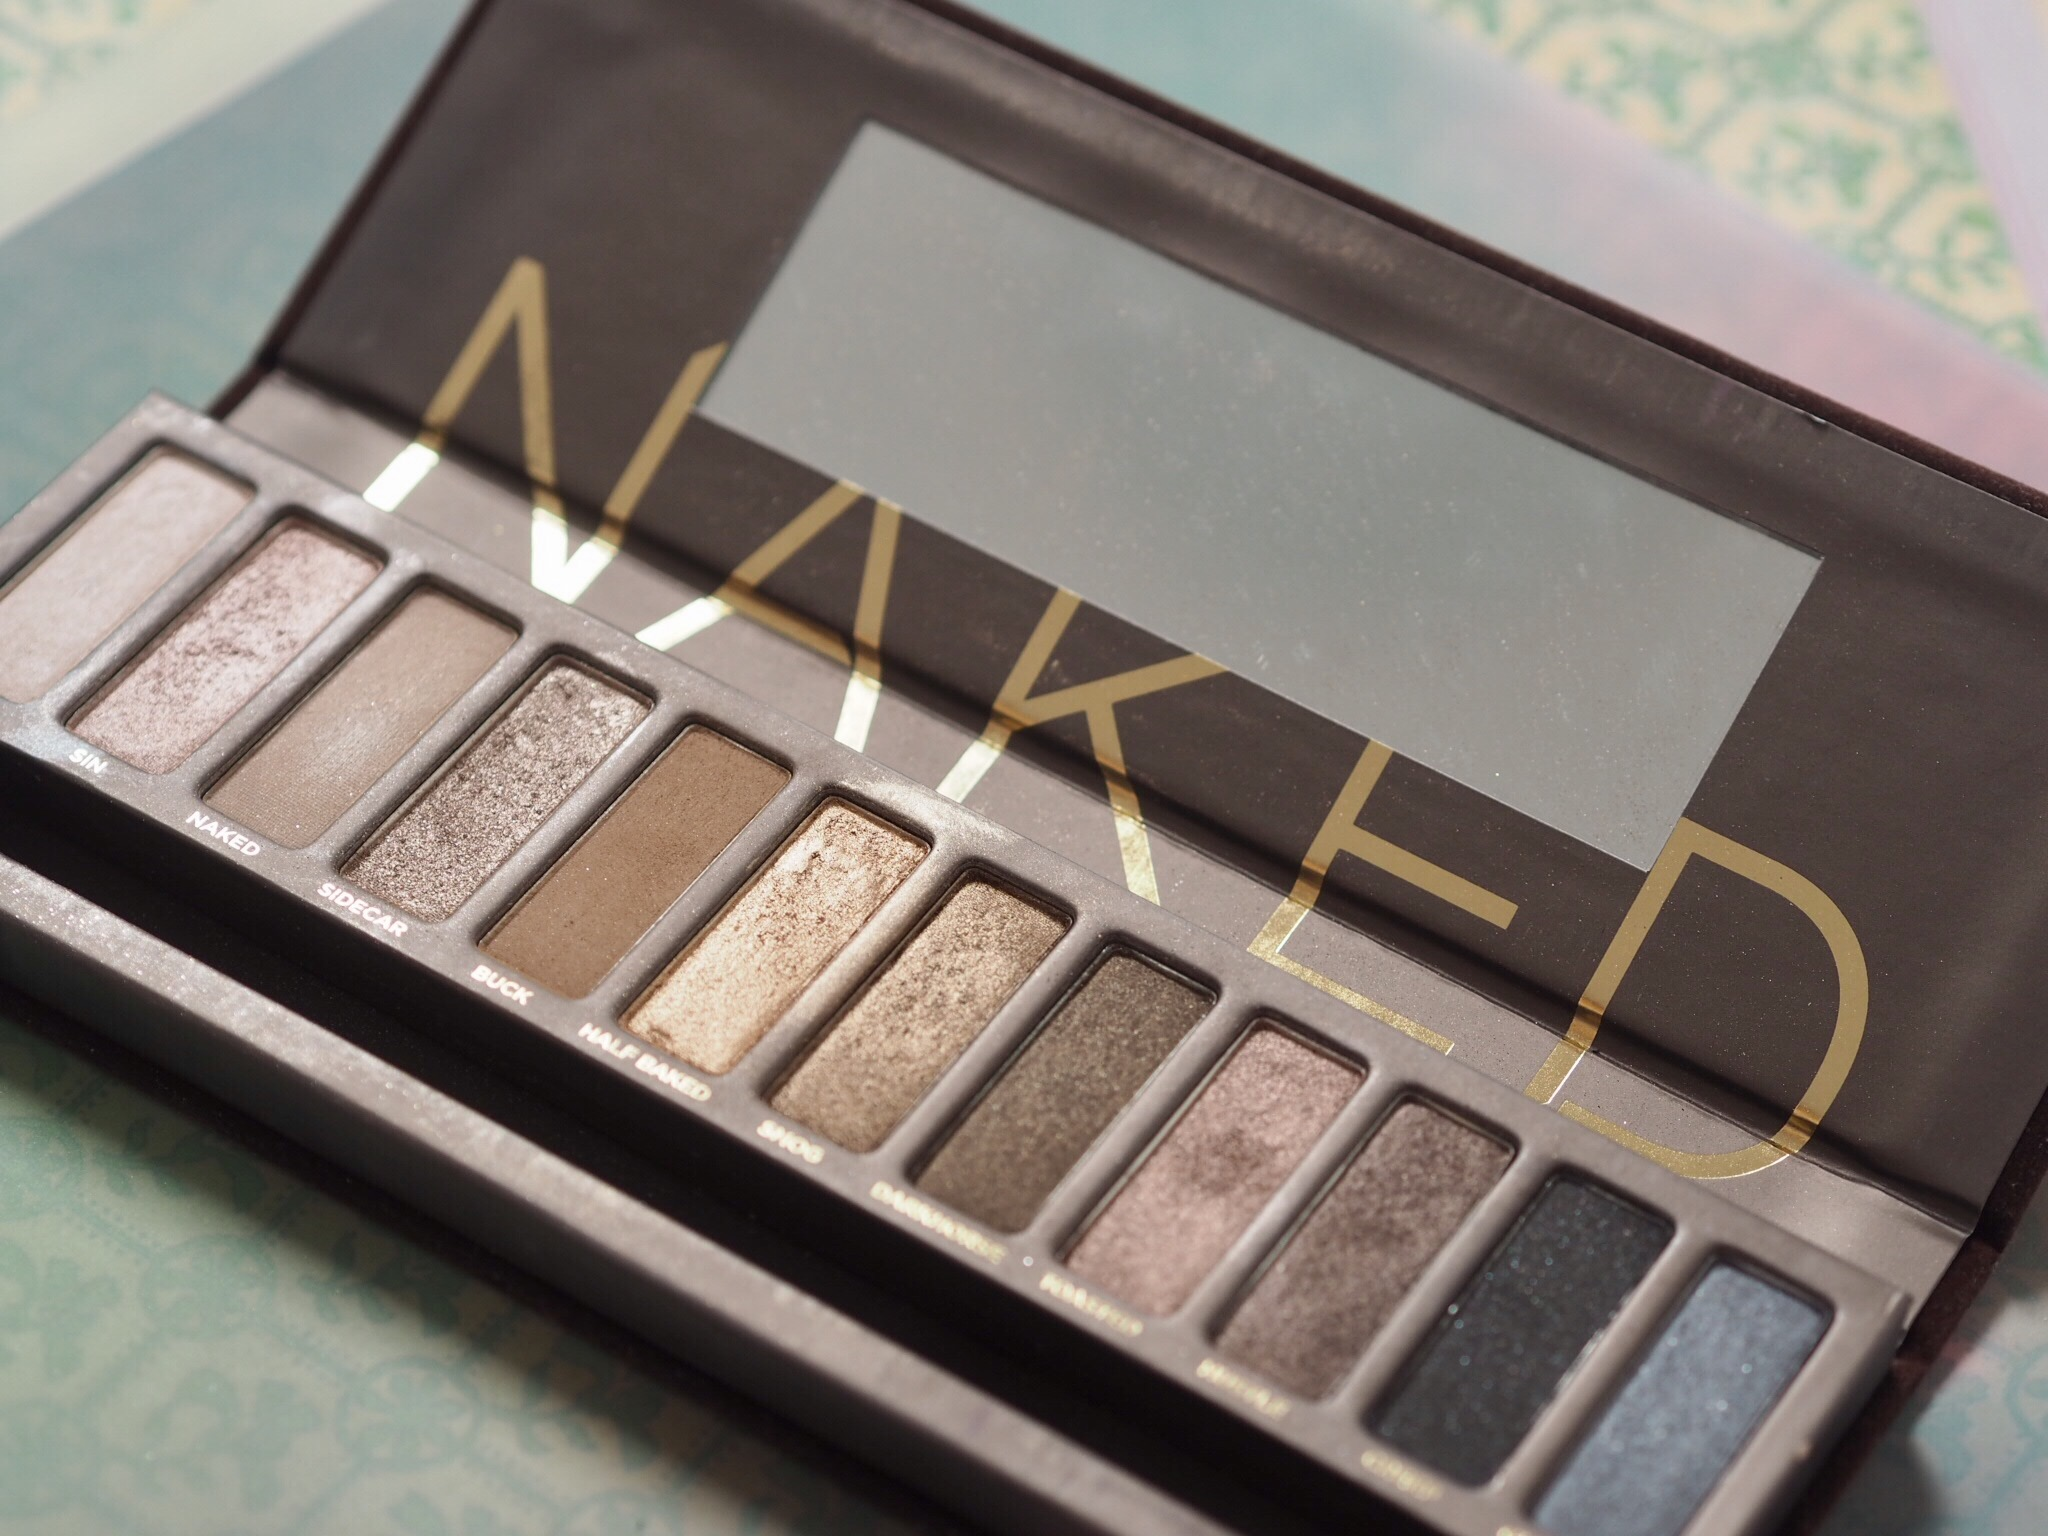 Urban decay brand insight